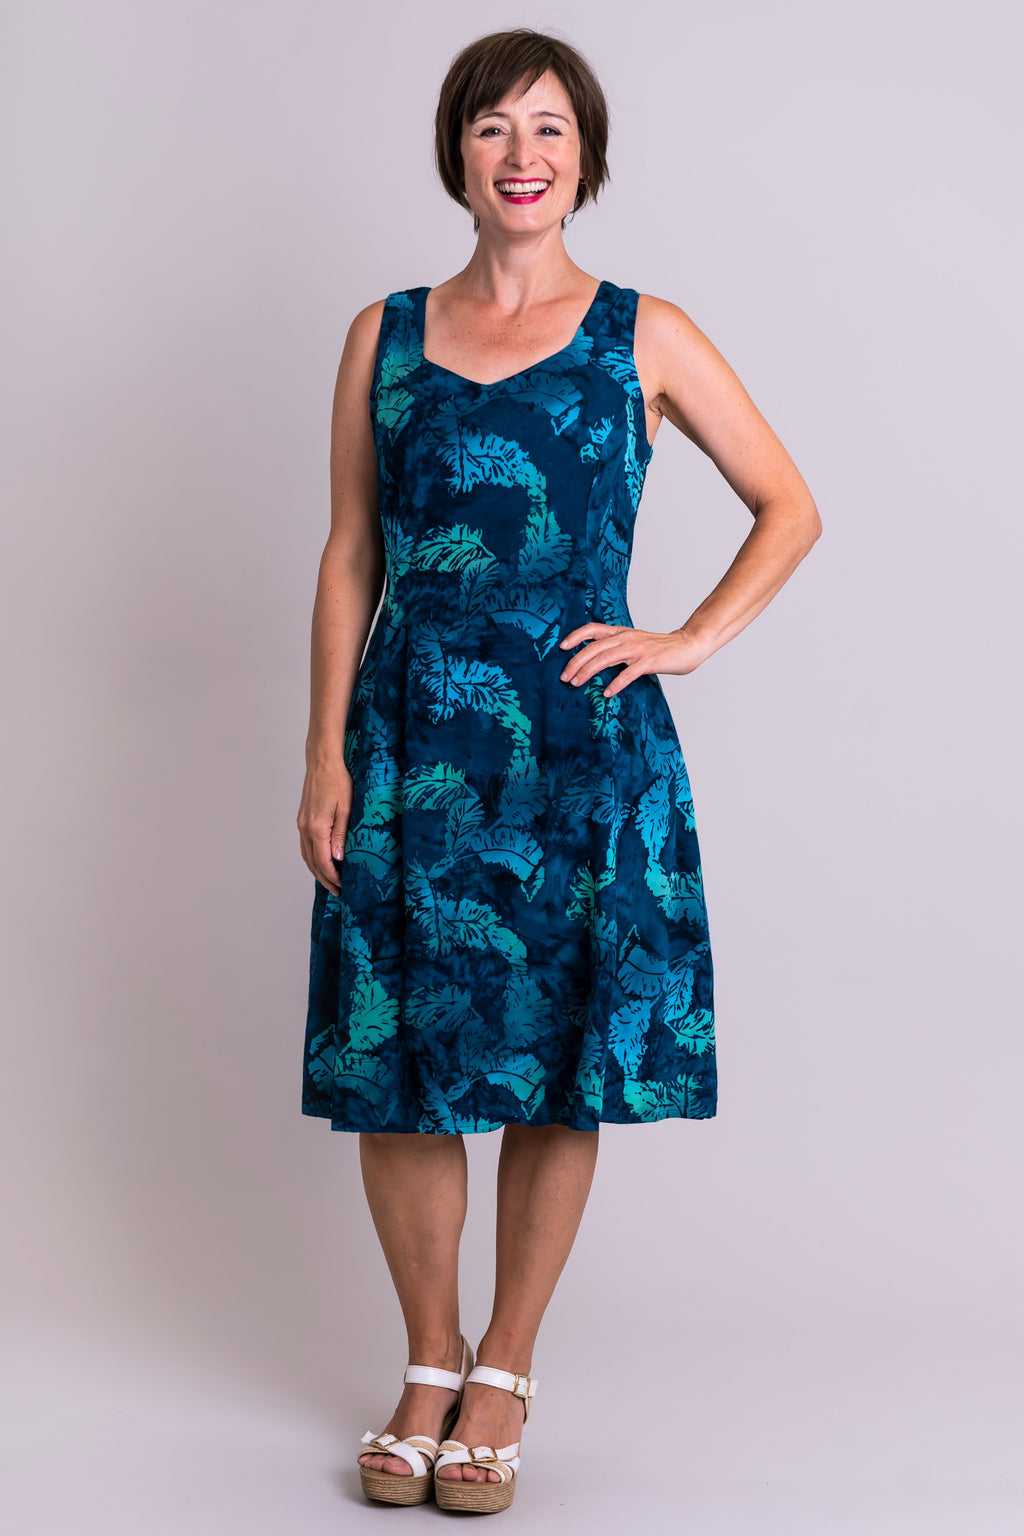 Sweet Sara Dress, Blue Feathers, Batik Art - Blue Sky Clothing Co